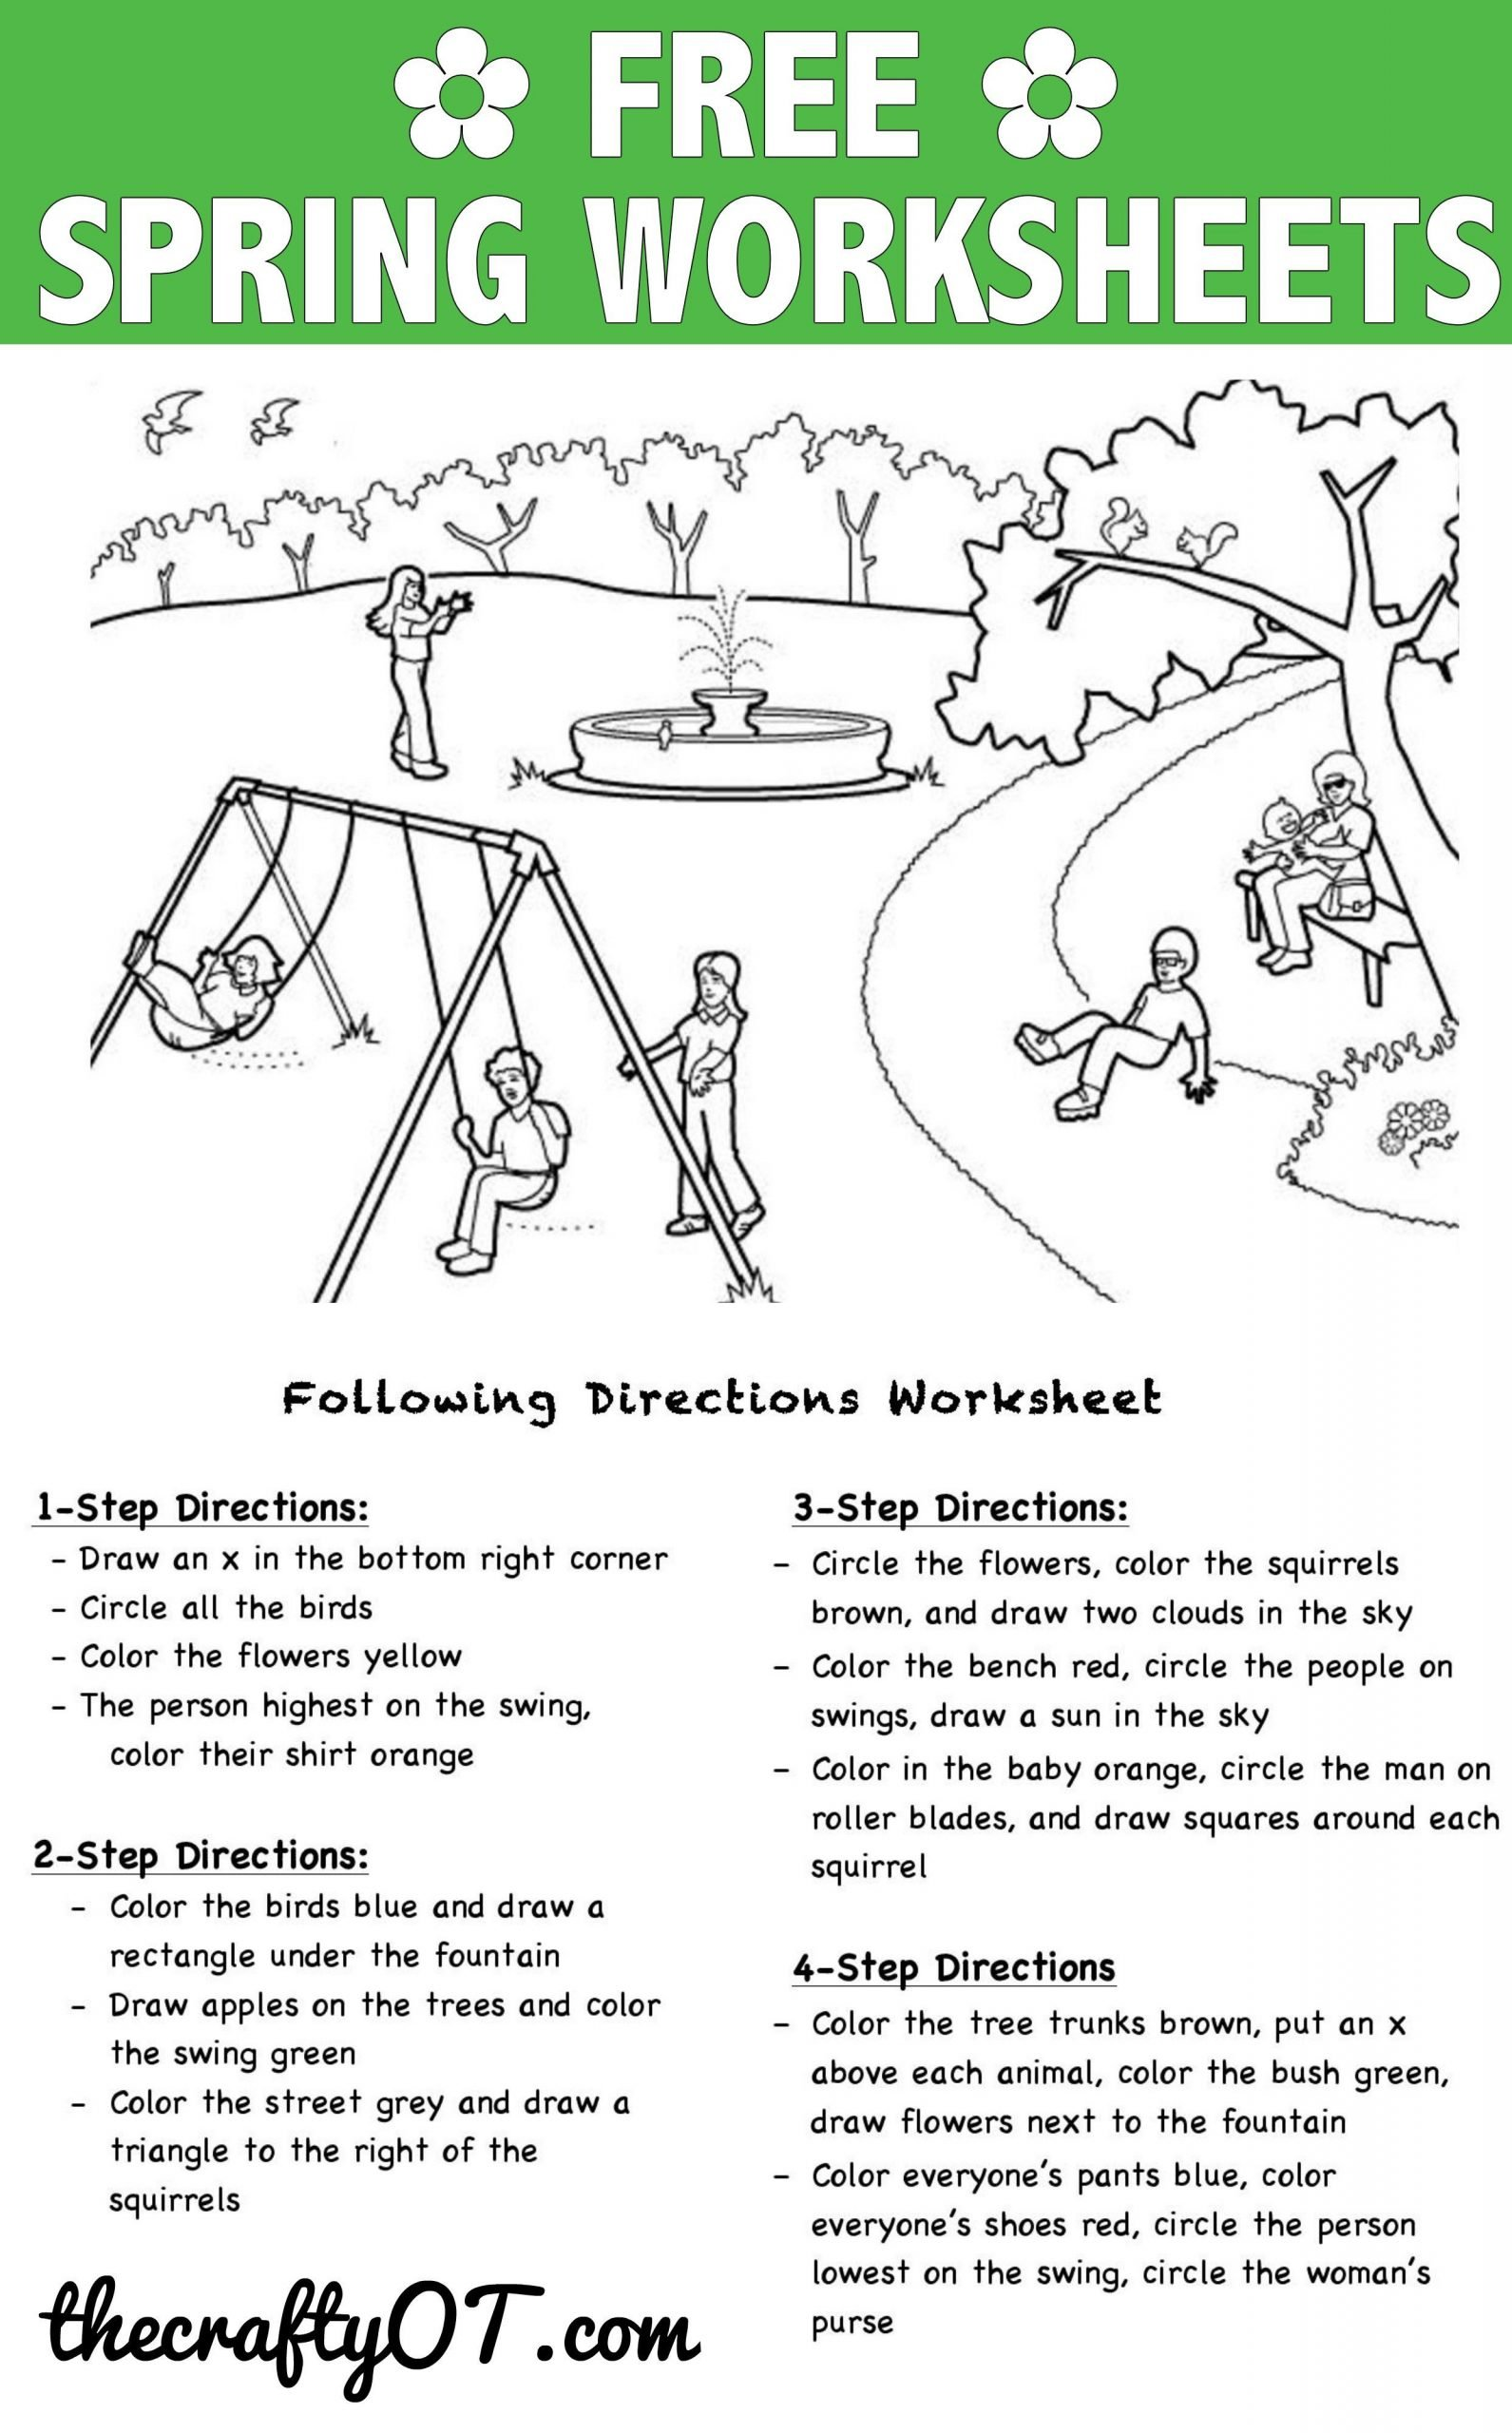 Multi Step Directions Worksheets Free Spring Worksheets